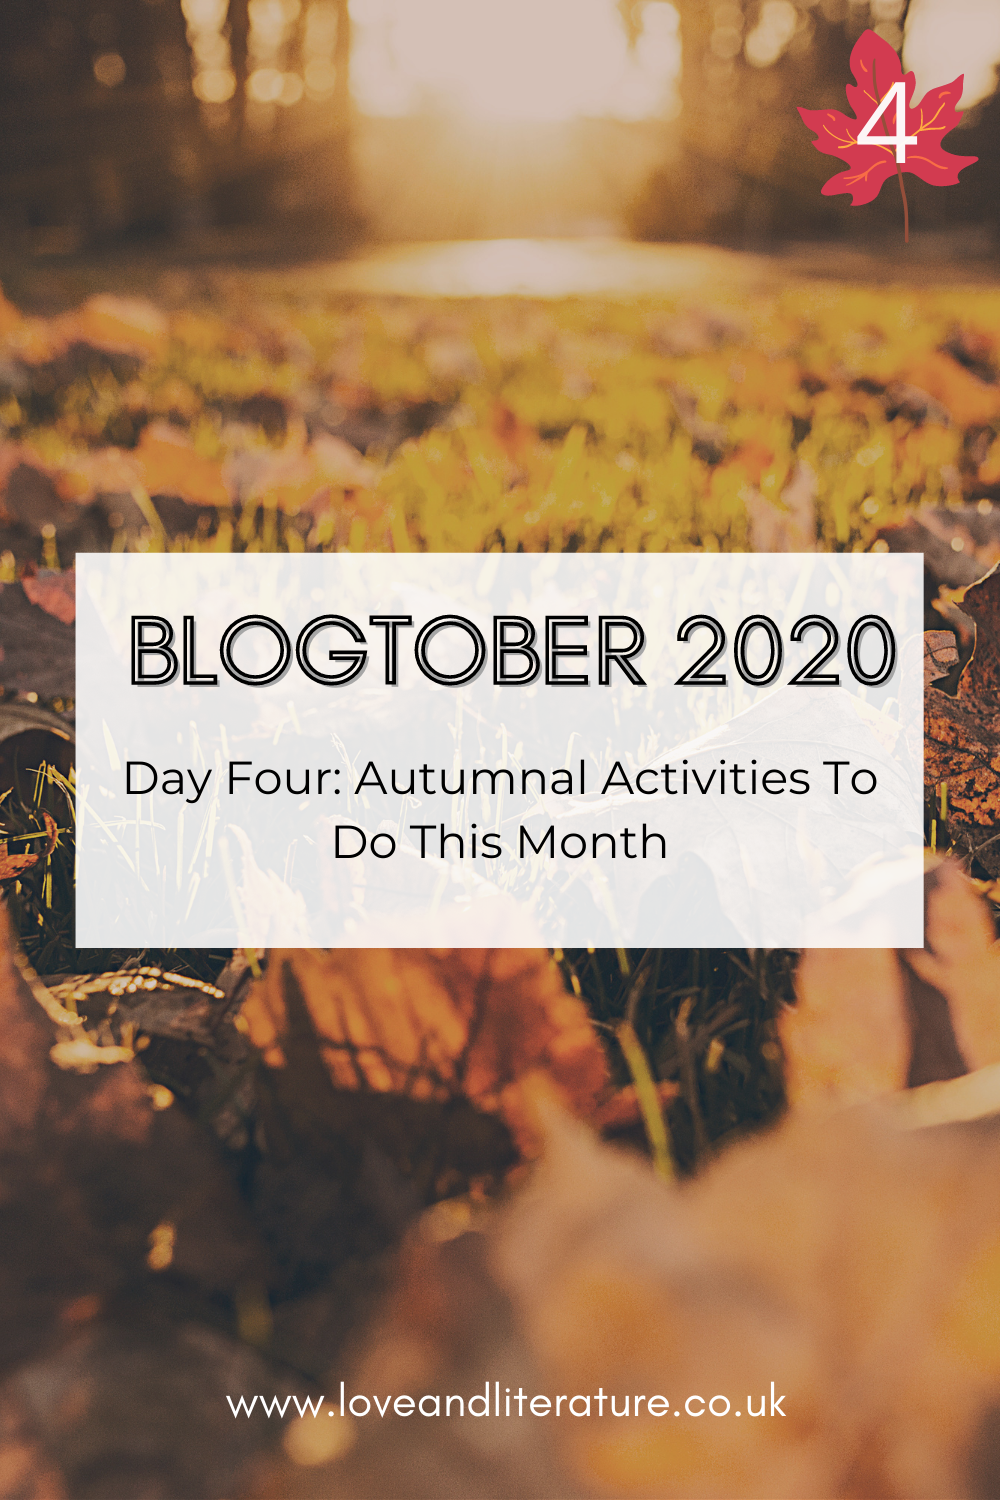 Autumnal Activities To Do This Month Pin, Fall Foliage background, text at front.